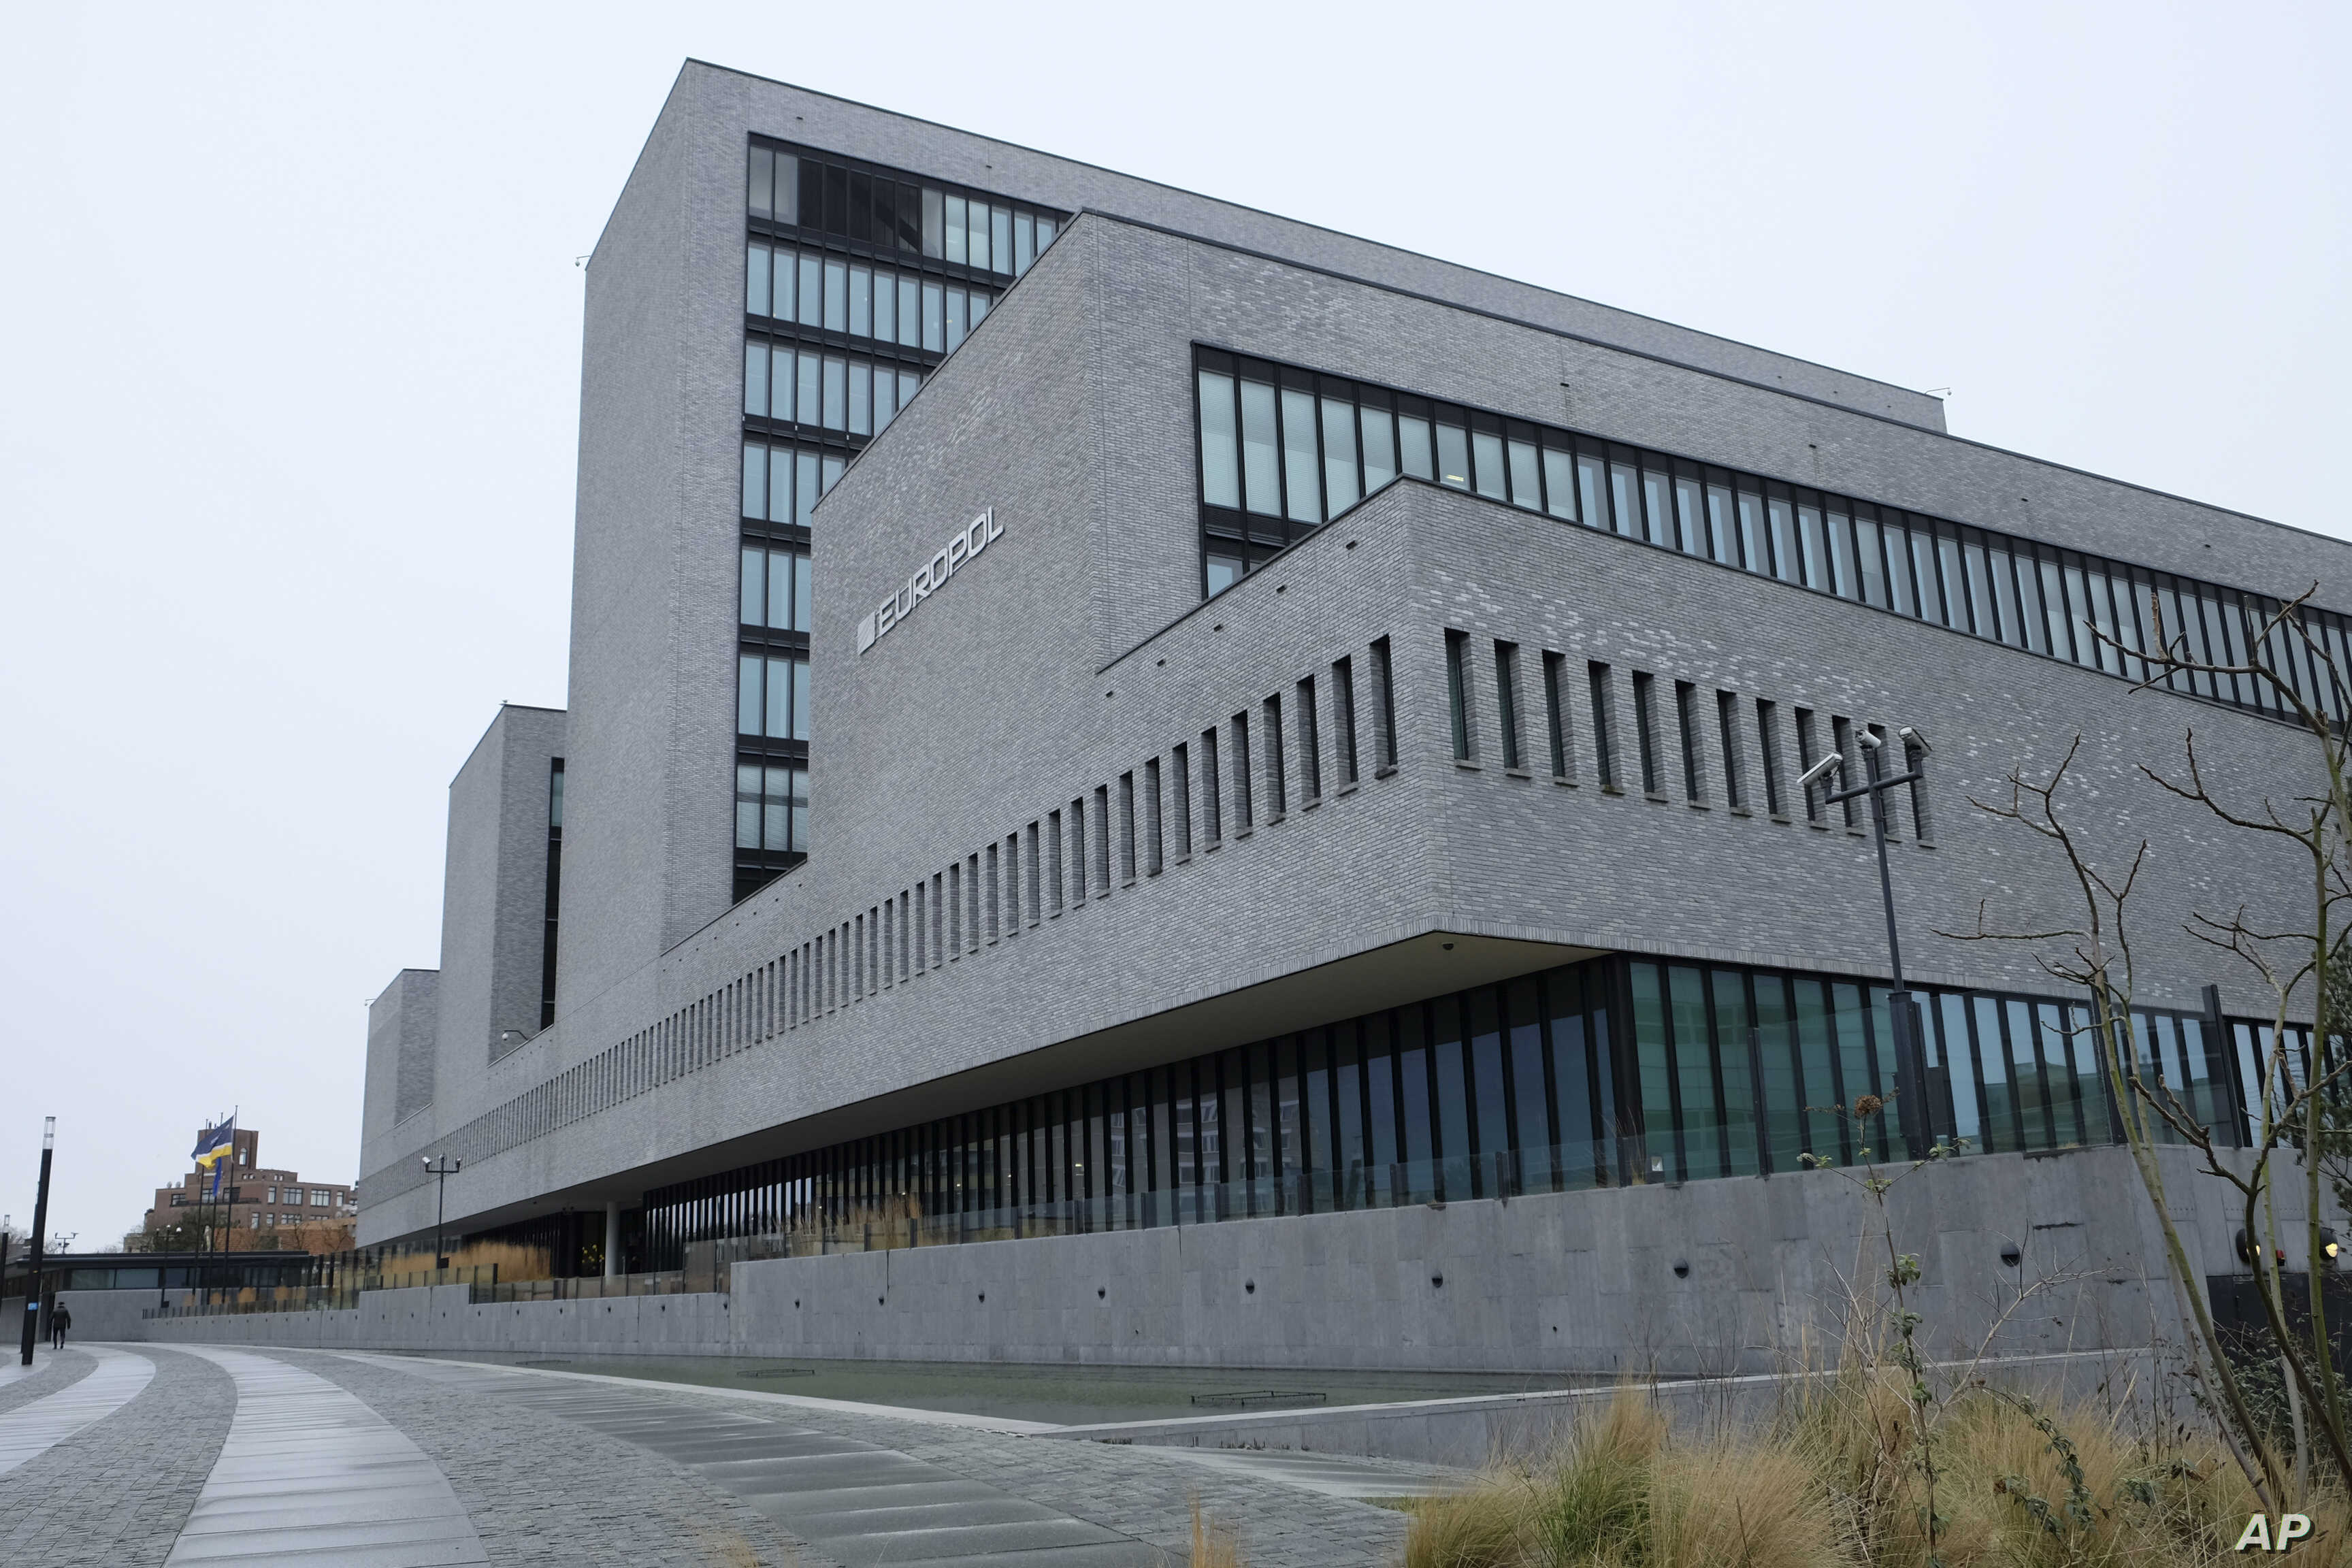 FILE - Exterior view of the Europol headquarters in The Hague, Netherlands, Feb. 22, 2016.